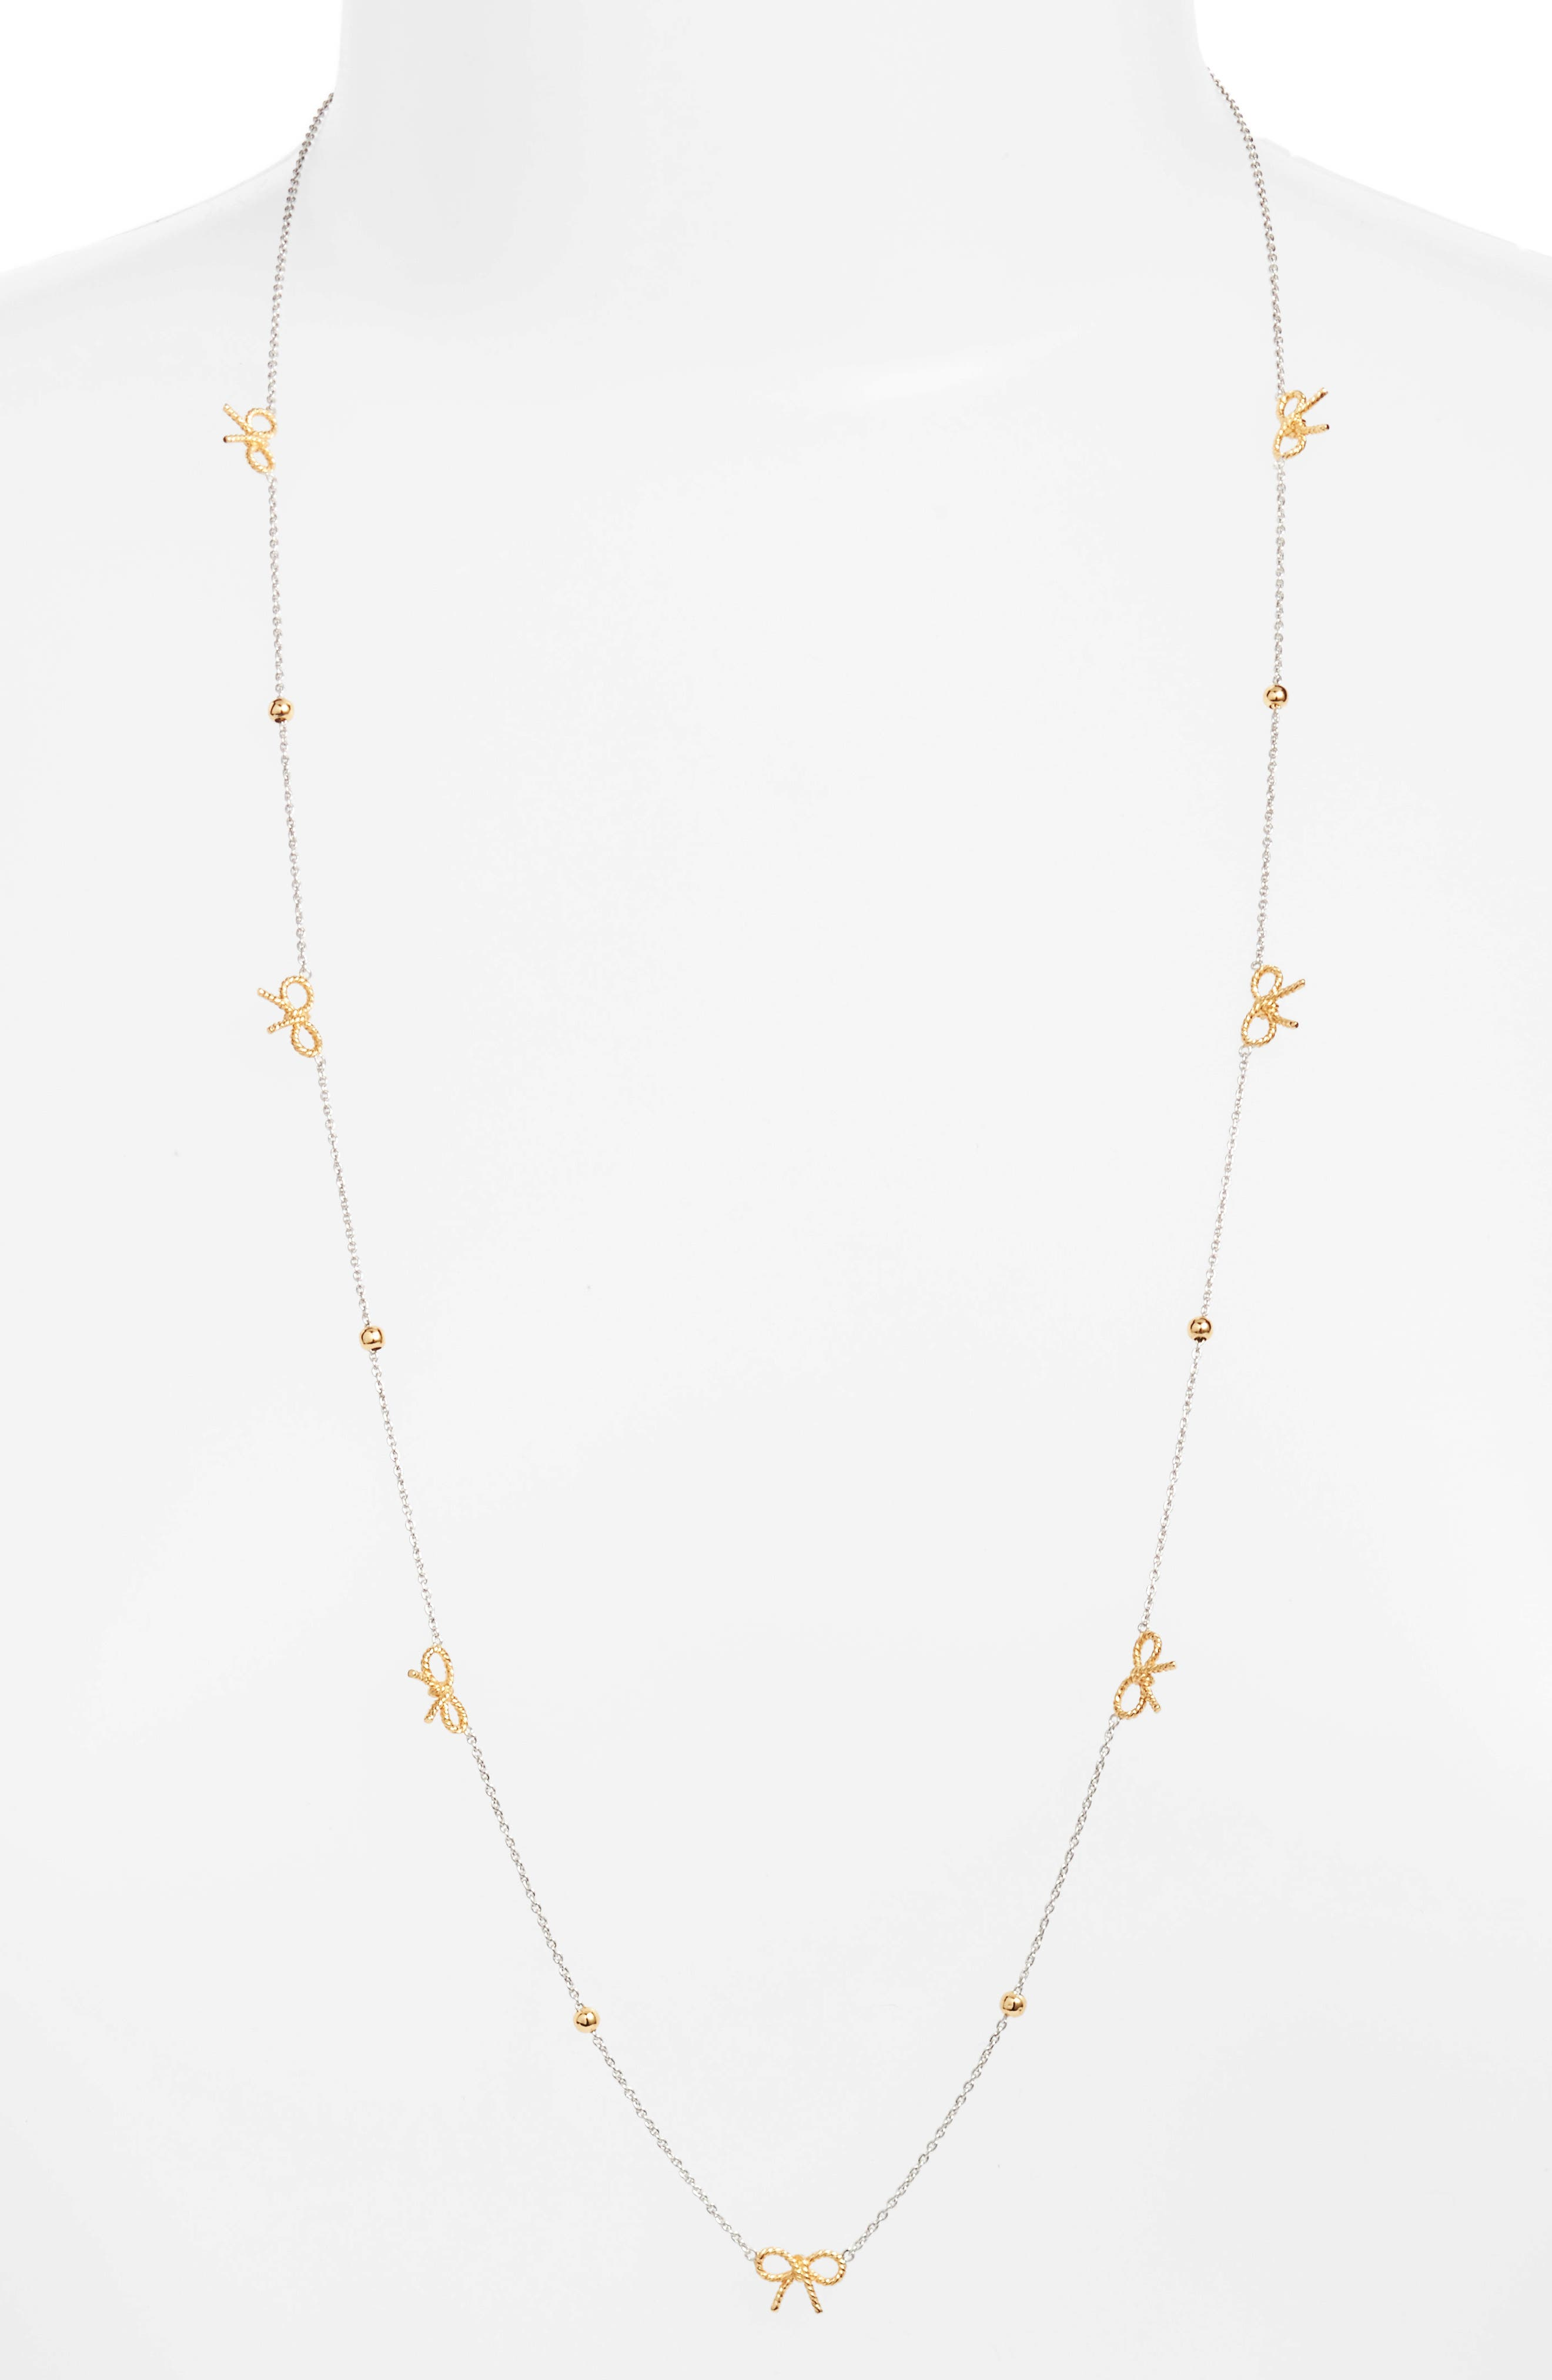 Bow Chain Necklace,                         Main,                         color, Silver/ Gold